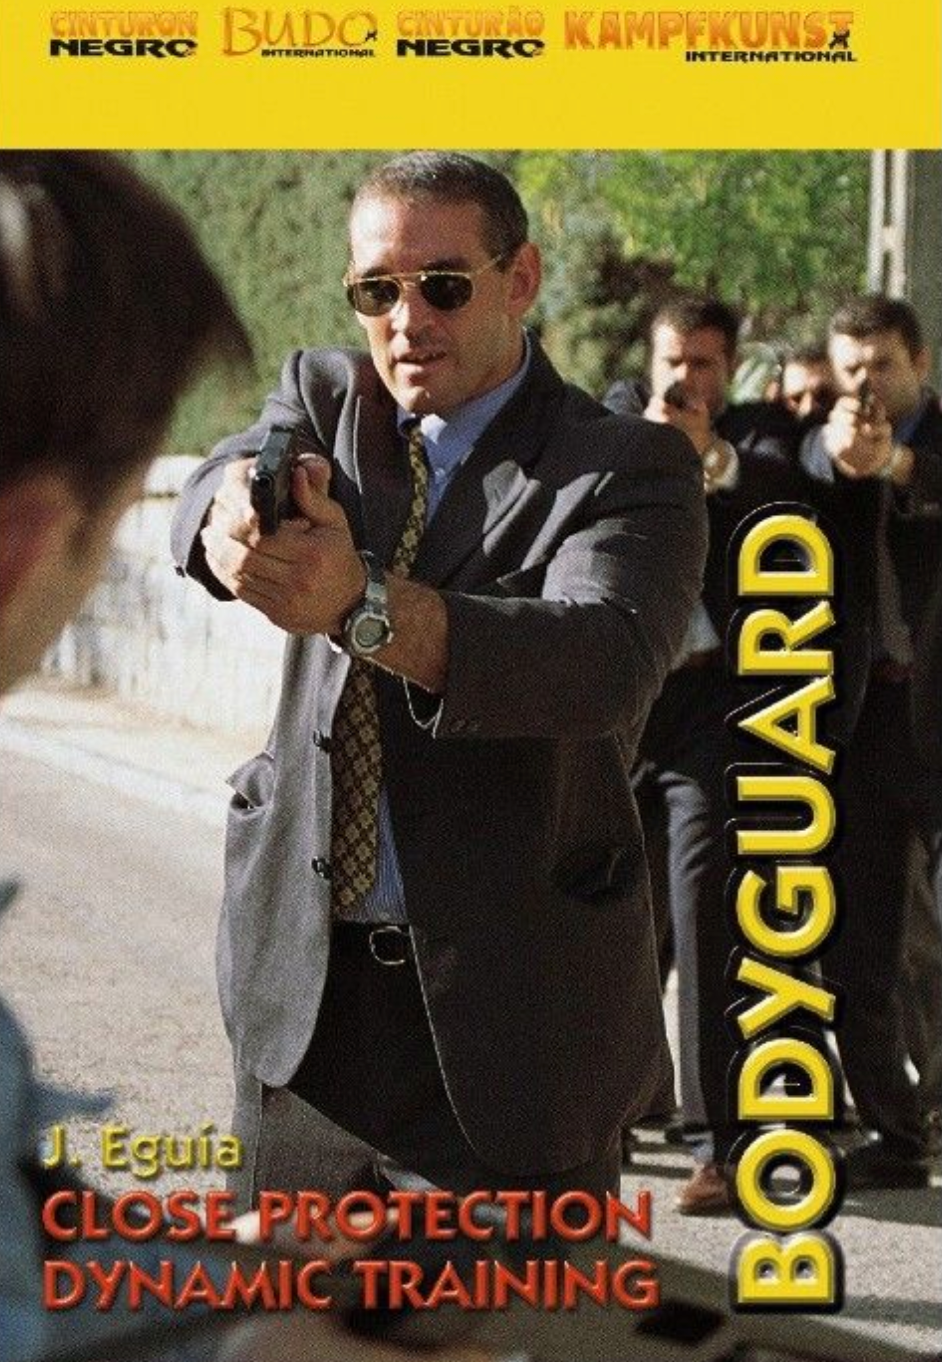 Bodyguard Dynamic Training DVD with J Eguia